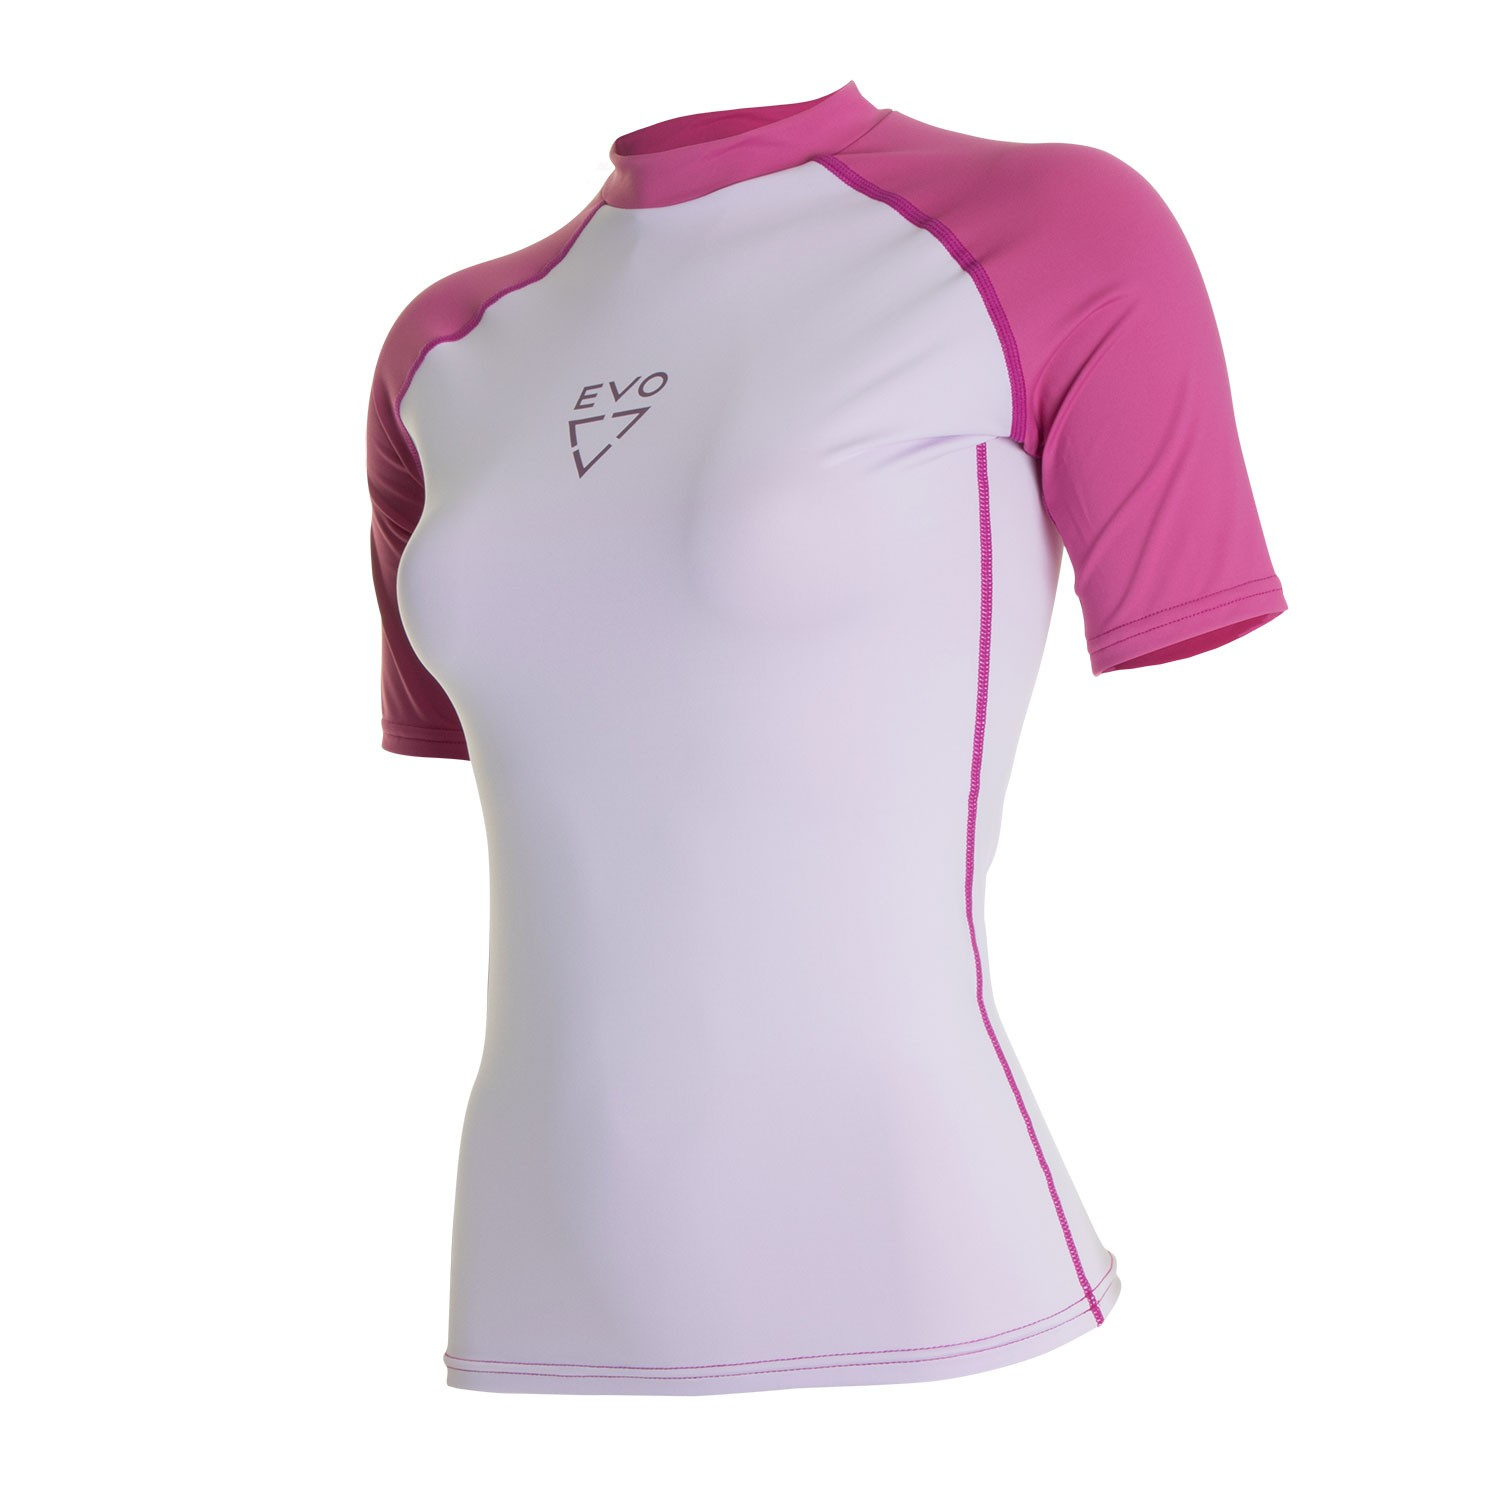 EVO Women's Short Sleeve Rash Guard - 2017